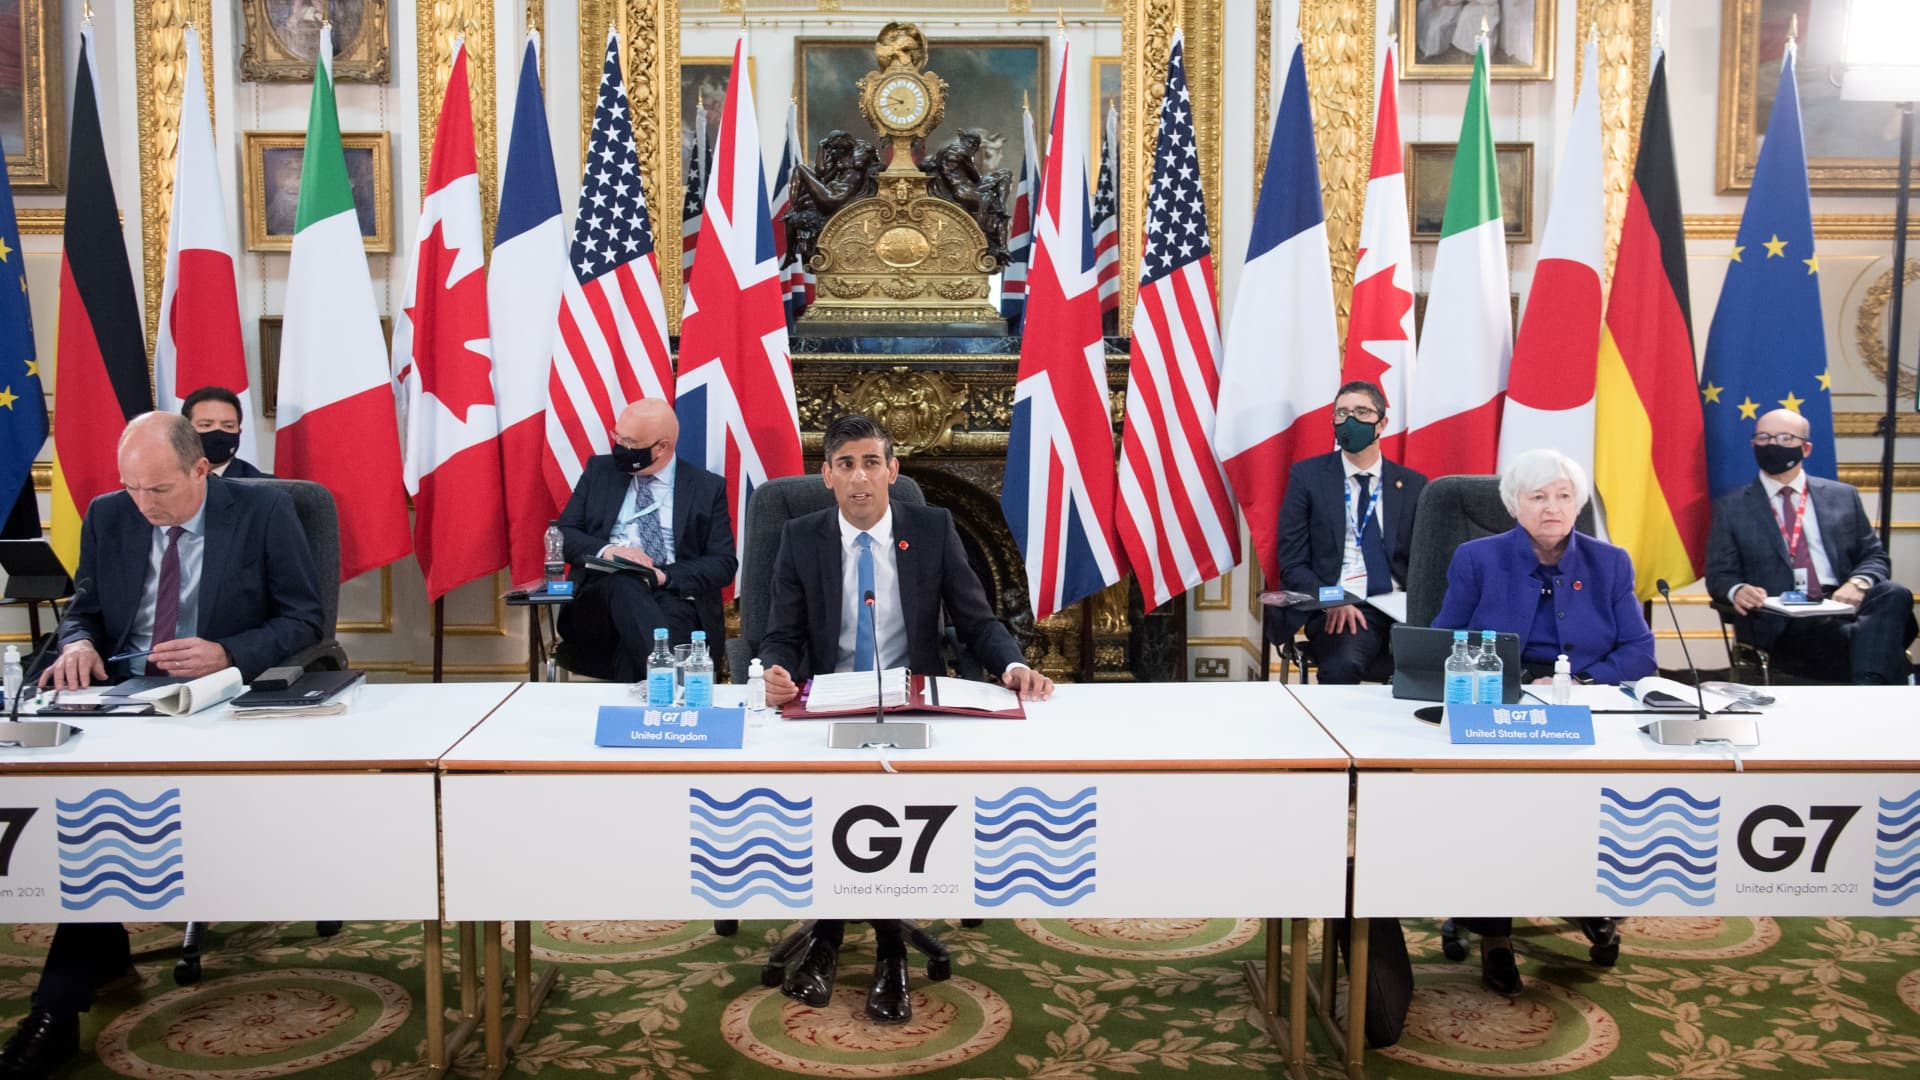 Britain's Chancellor of the Exchequer Rishi Sunak (center), U.S. Treasury Secretary Janet Yellen (right) attend the first day of the G-7 Finance Ministers Meeting at Lancaster House in London on June 4, 2021.